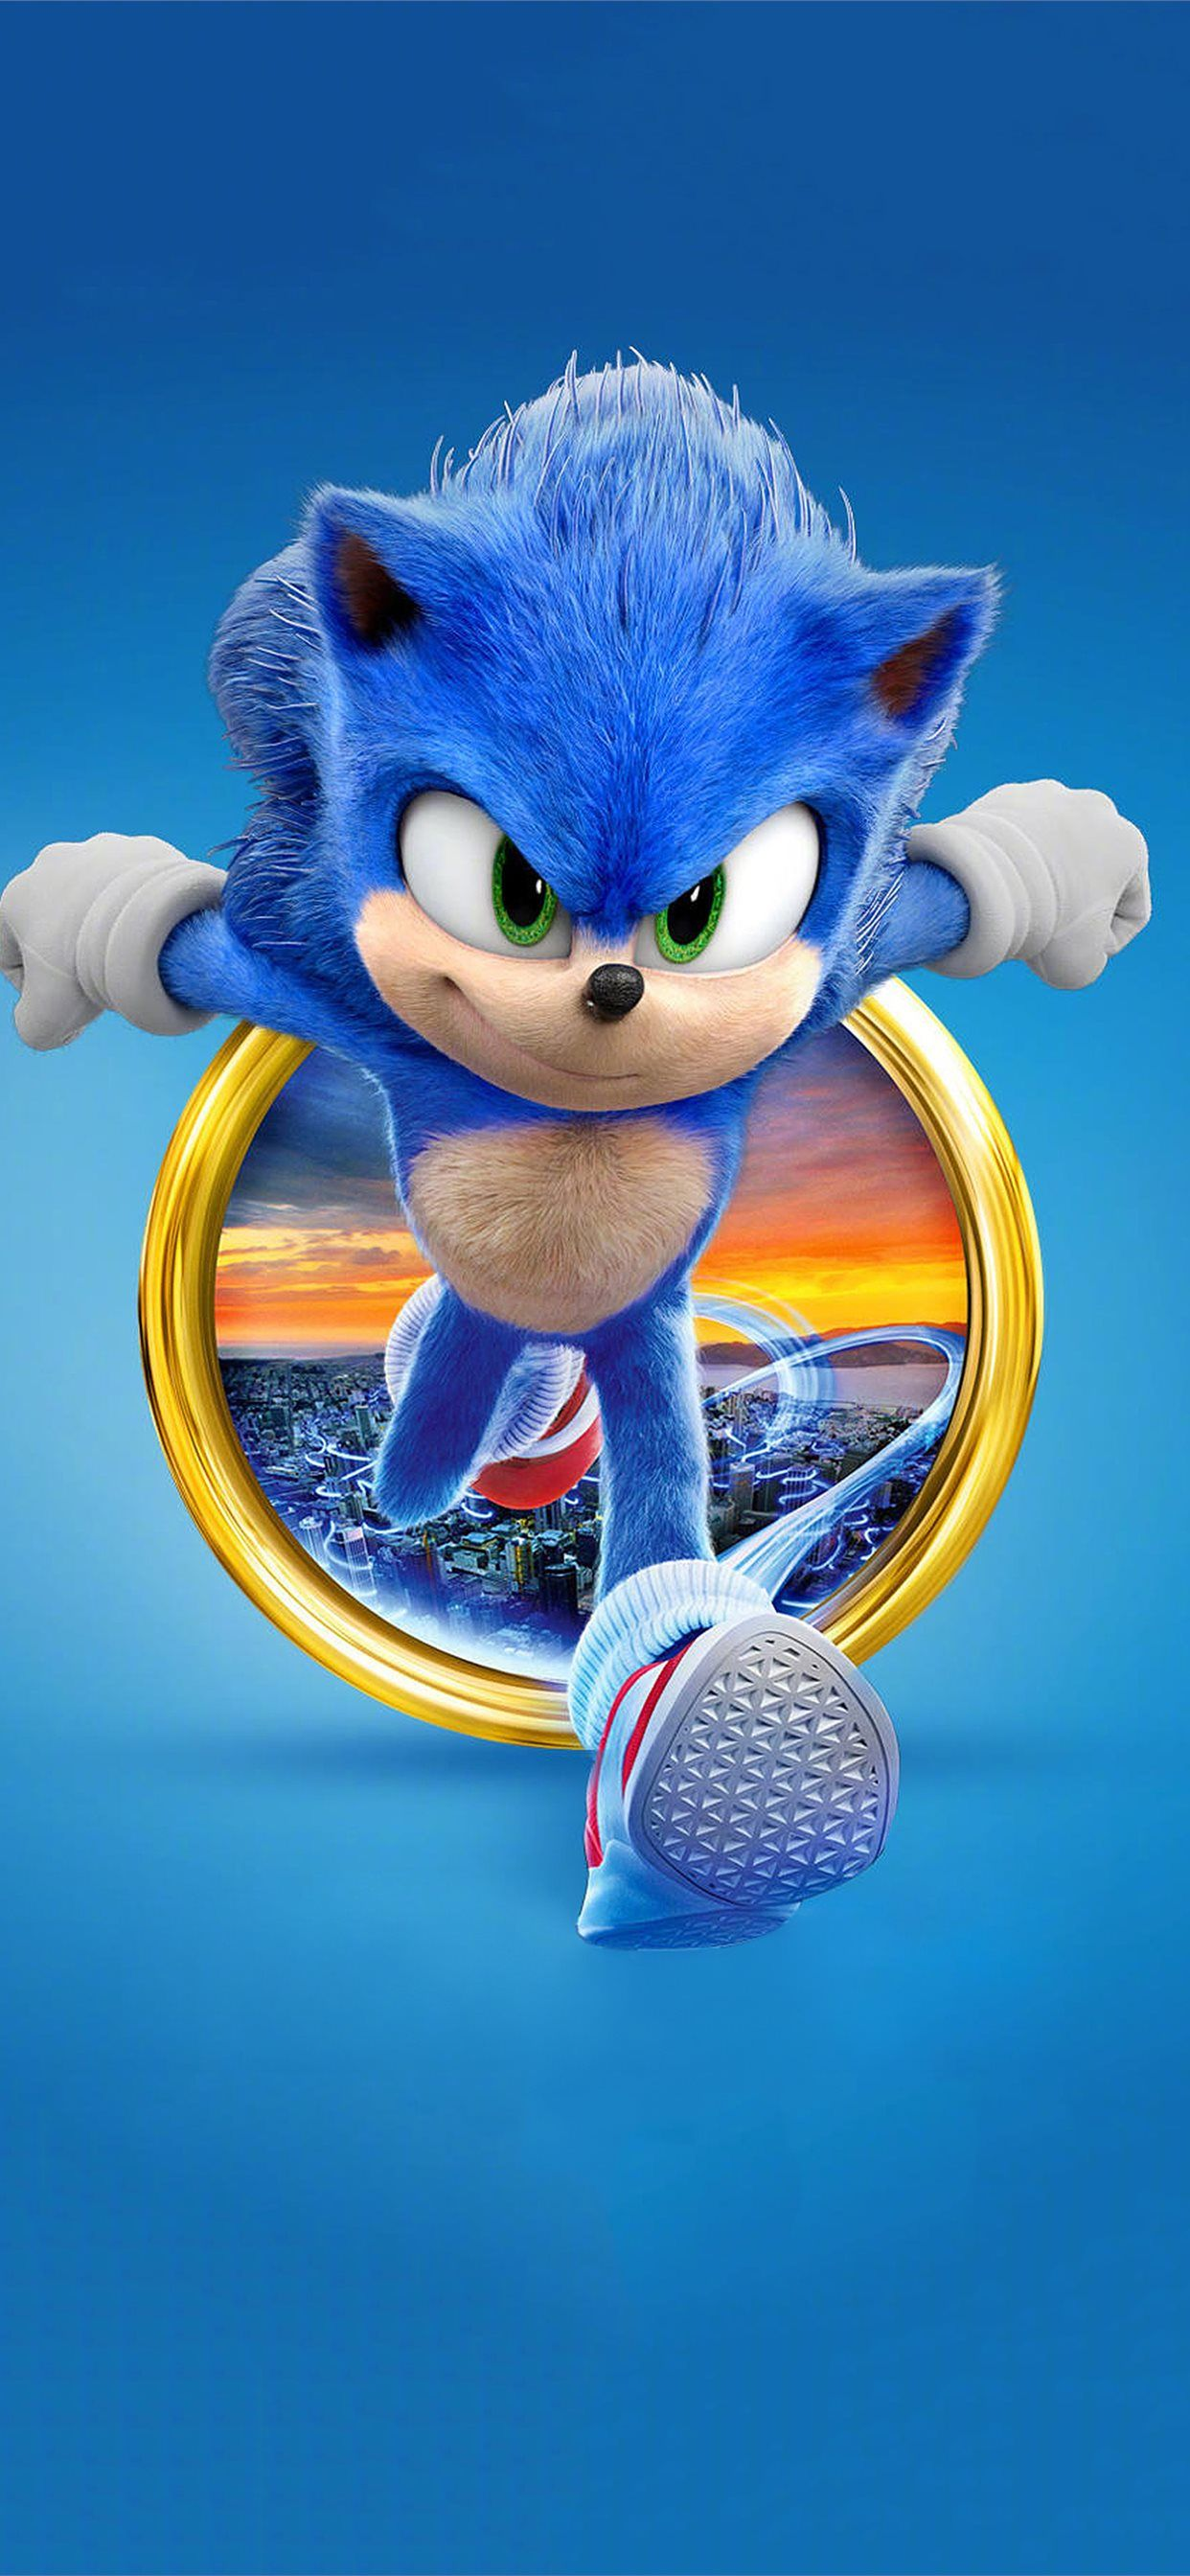 Pin By Darin Spellwell On Sonic In 2020 Sonic Hedgehog Movie Sonic The Hedgehog